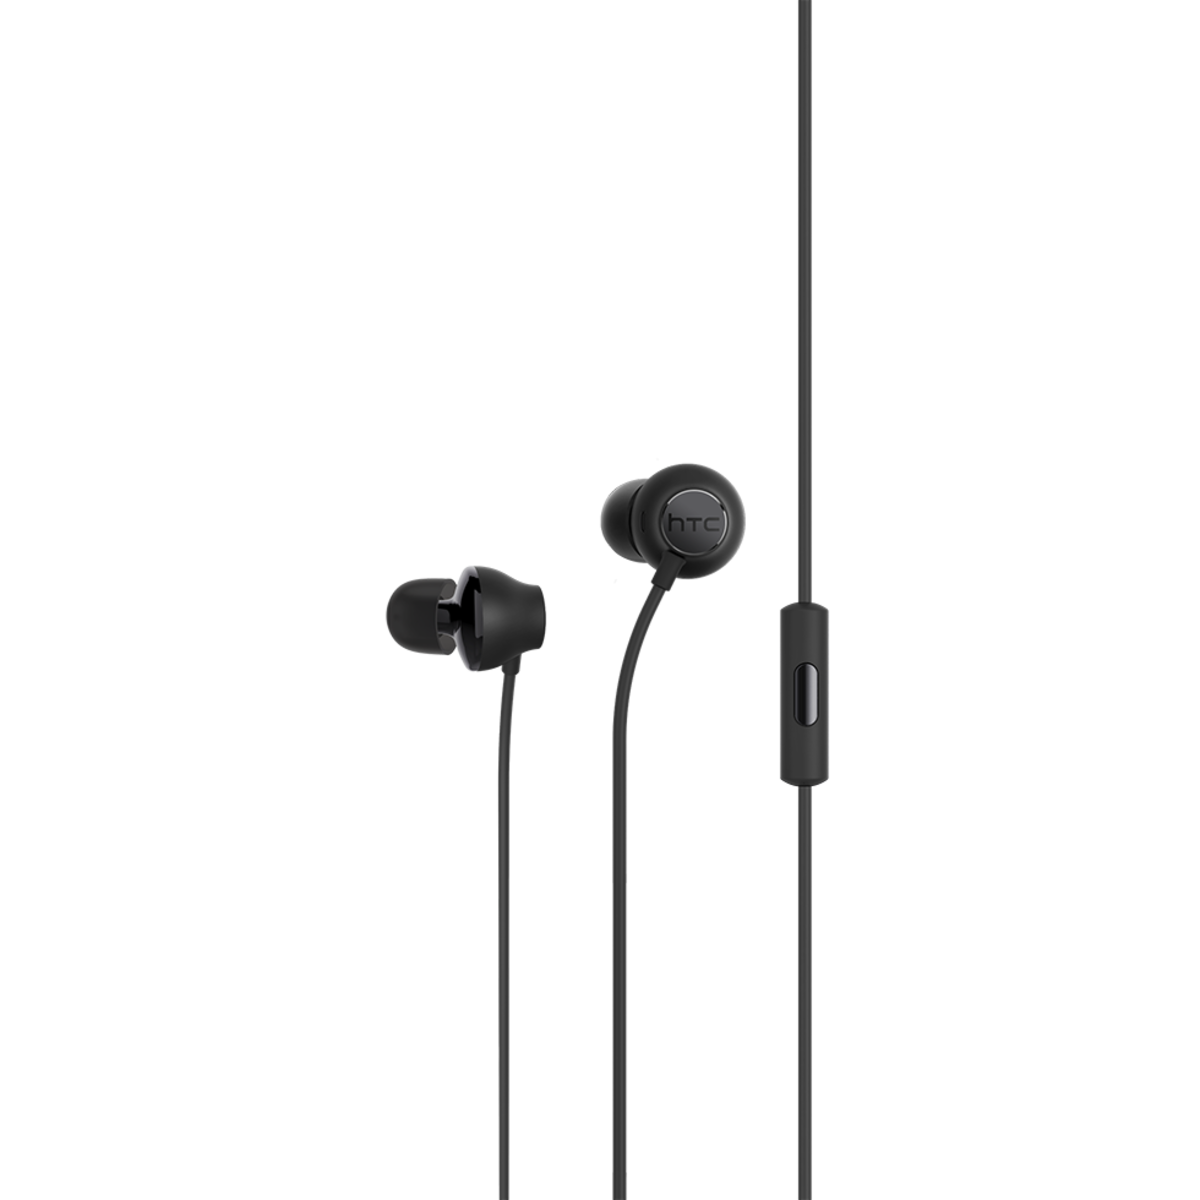 Usonic USB Type C Hi-Res Adaptive Sound 2.0 Earphone 耳機 - 深灰色